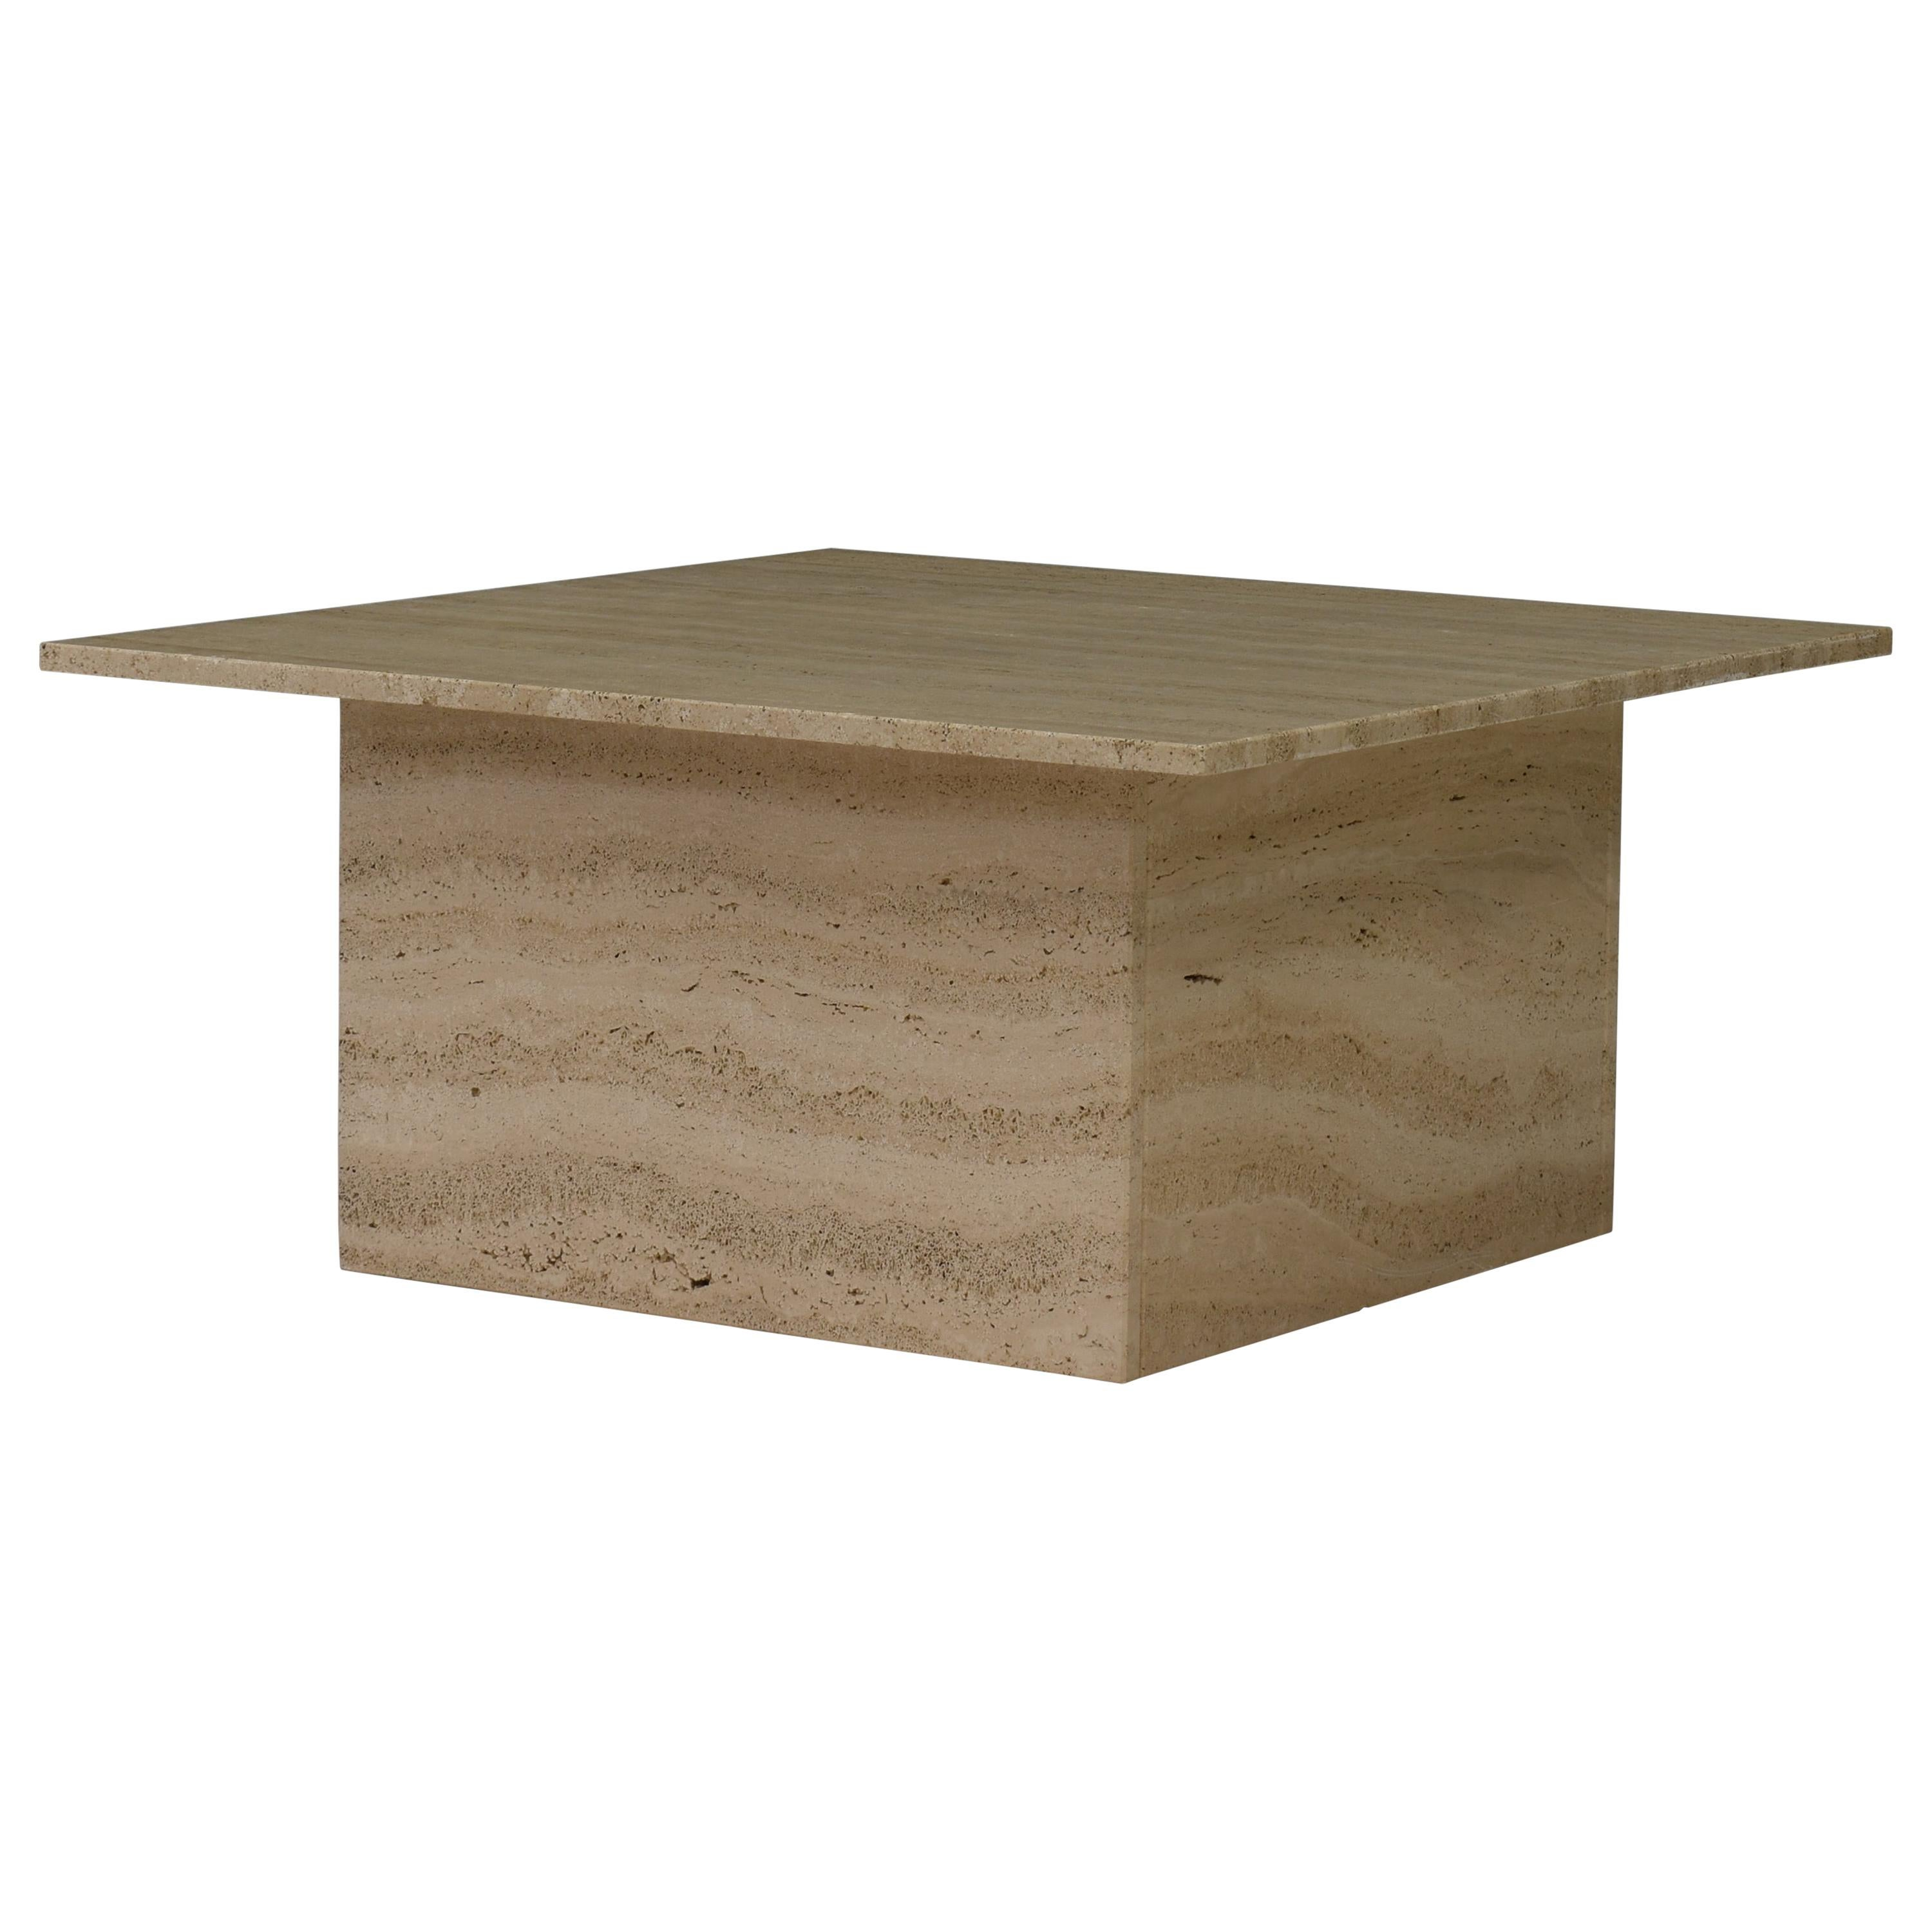 Square Travertine Coffee Table in the style of Up&Up Mangiarotti, Italy, 1970